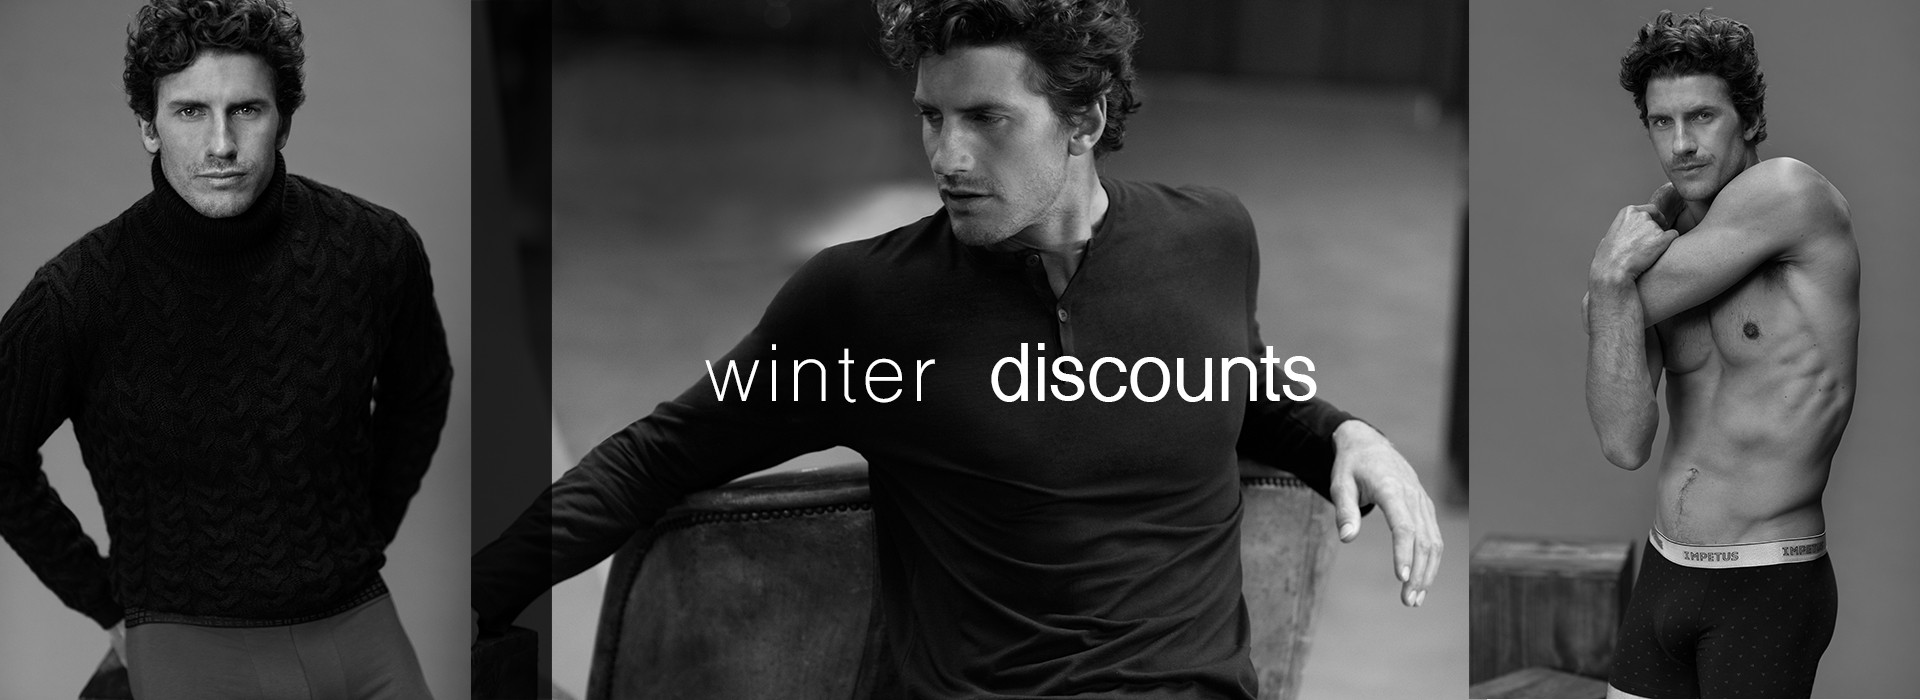 impetus winter promotions